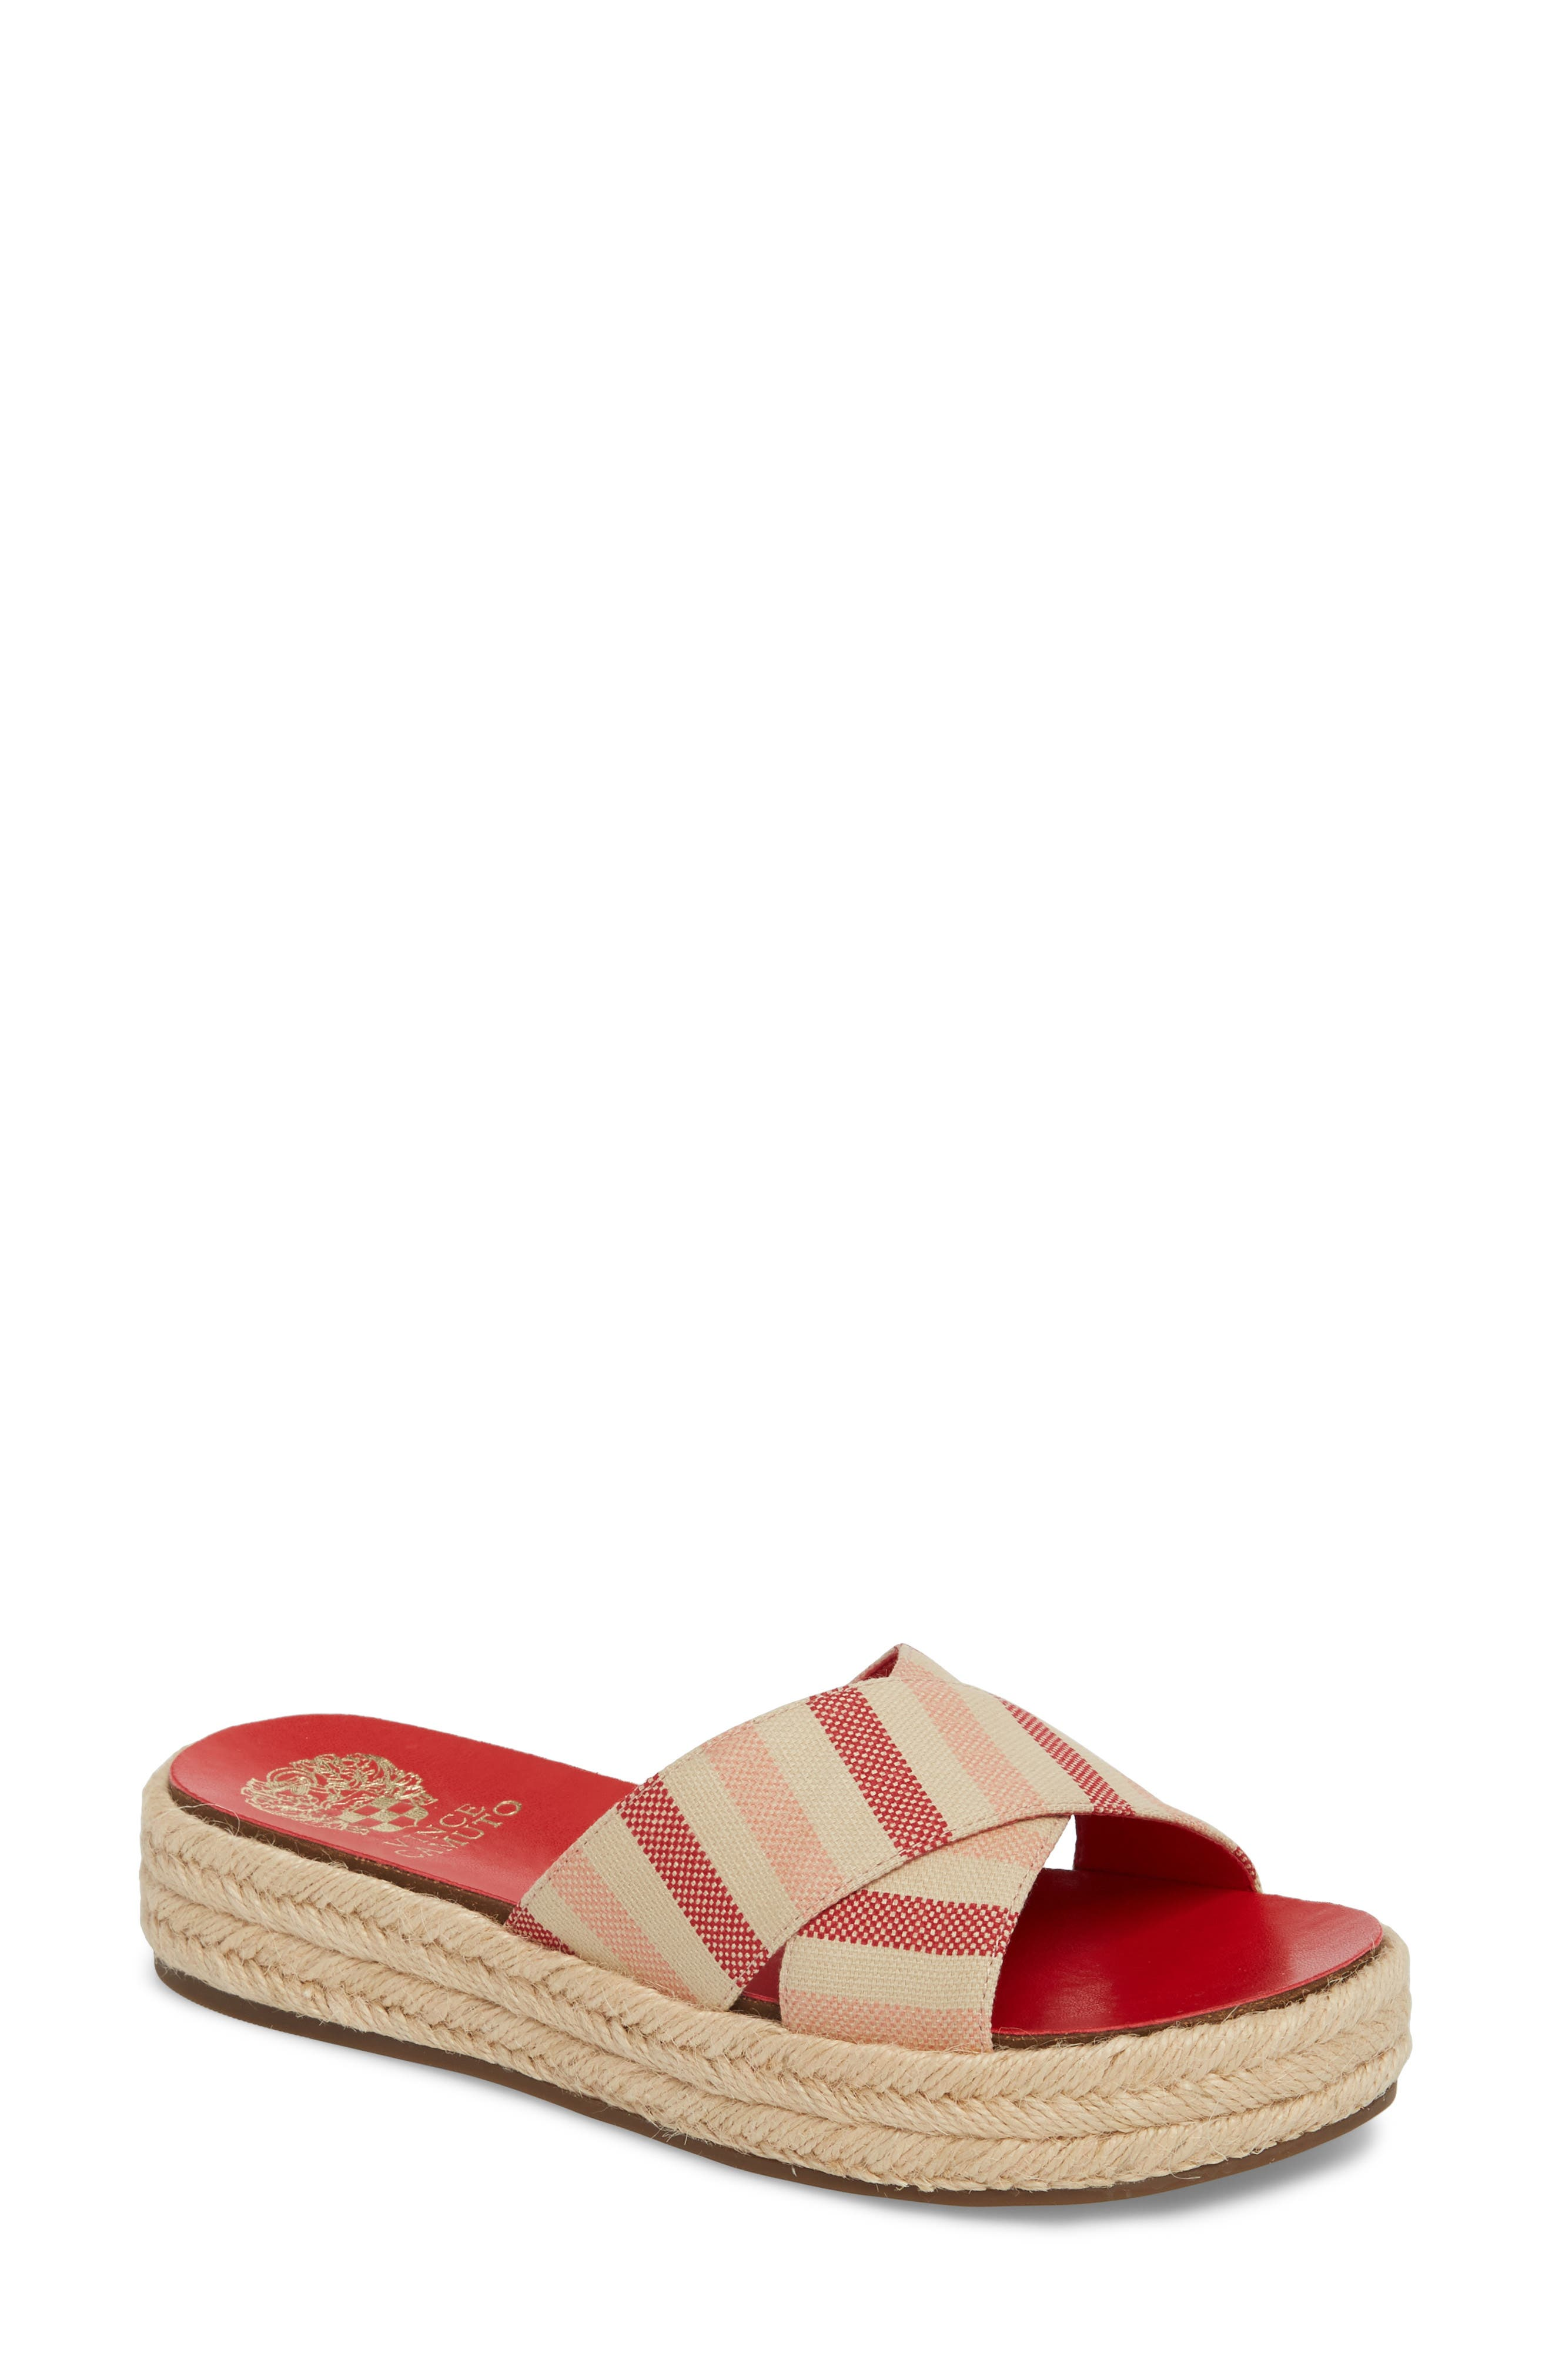 Carran Platform Sandal,                             Main thumbnail 1, color,                             Red Hot Rio Stripe Canvas